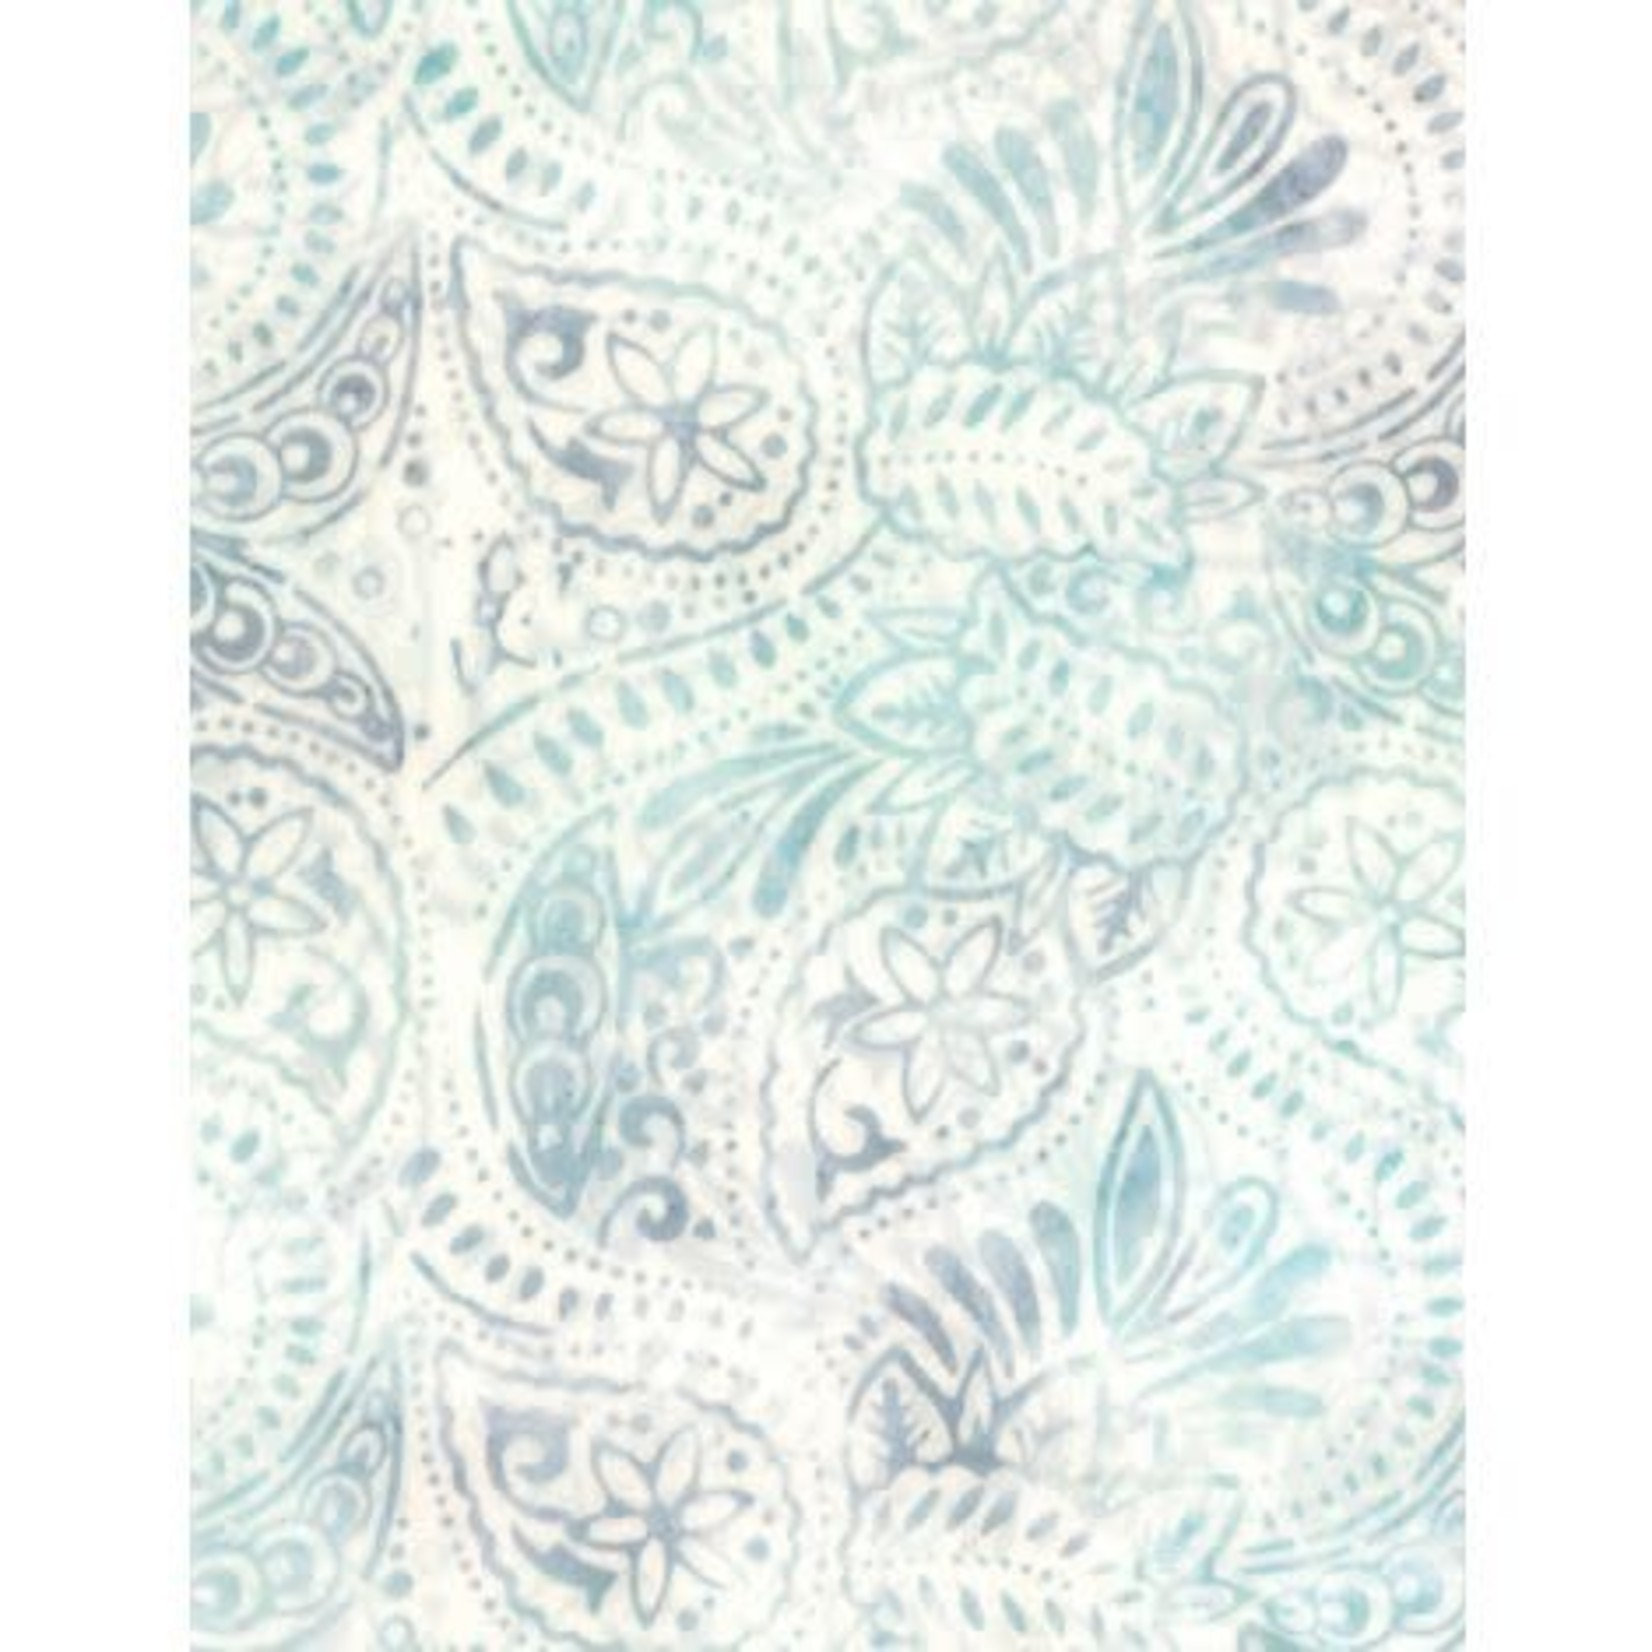 Wilmington Prints Ribbon Candy, Packed Paisley Cream/Blue, Fabric A, Per Cm or $20/m